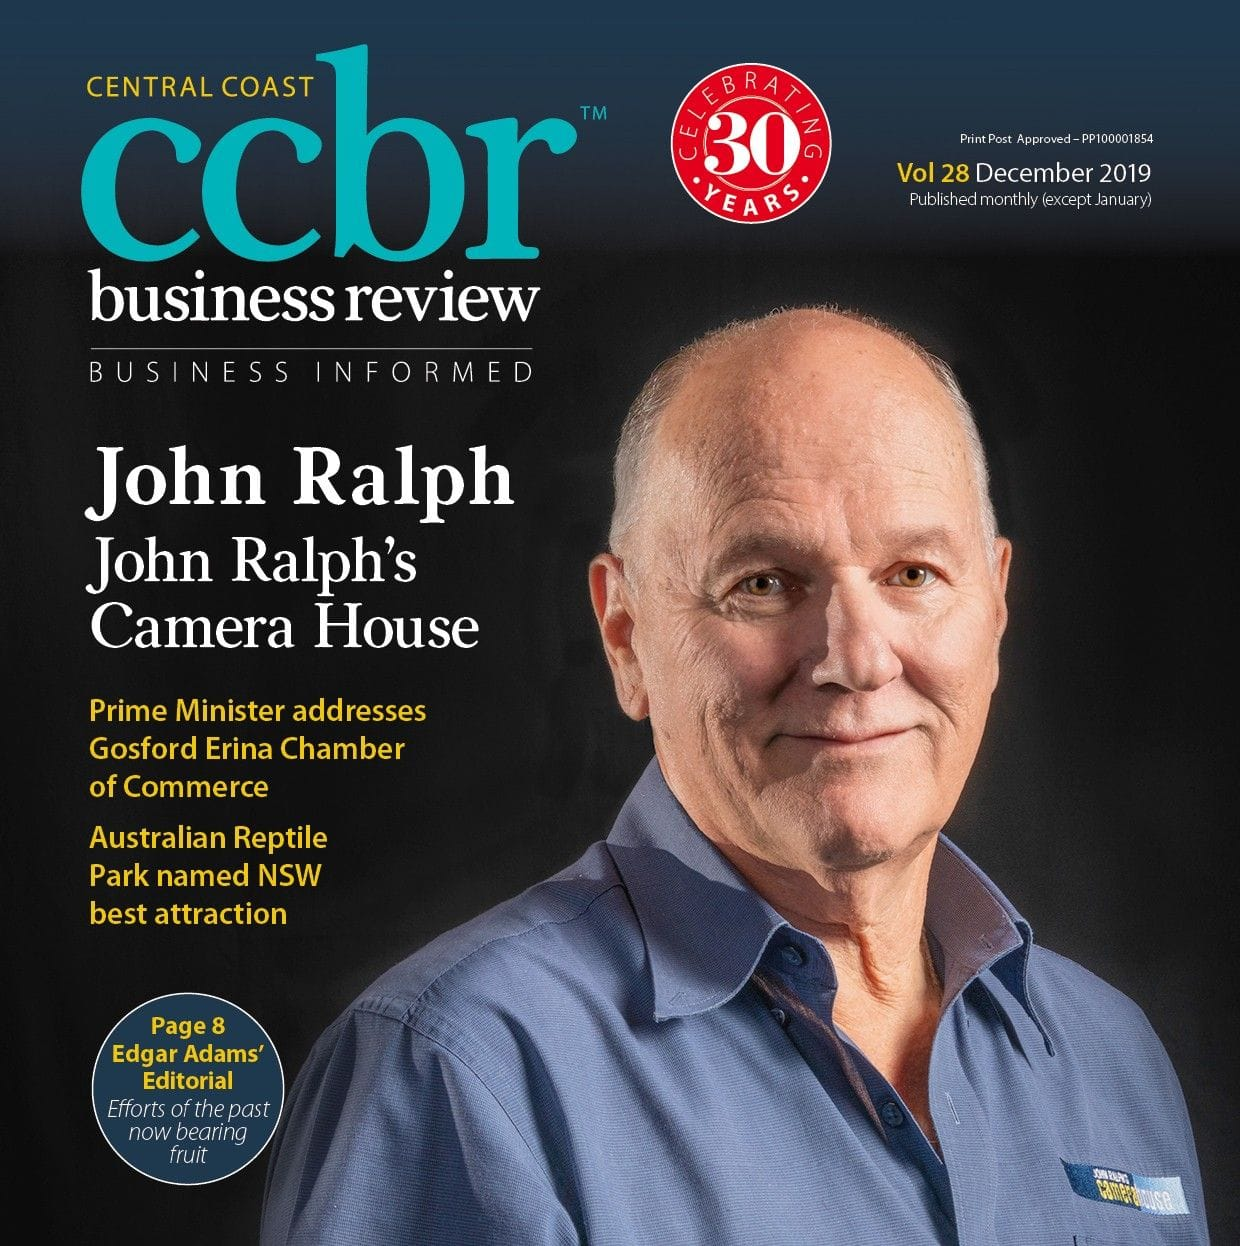 Central Coast Business Review December 2019 Issue